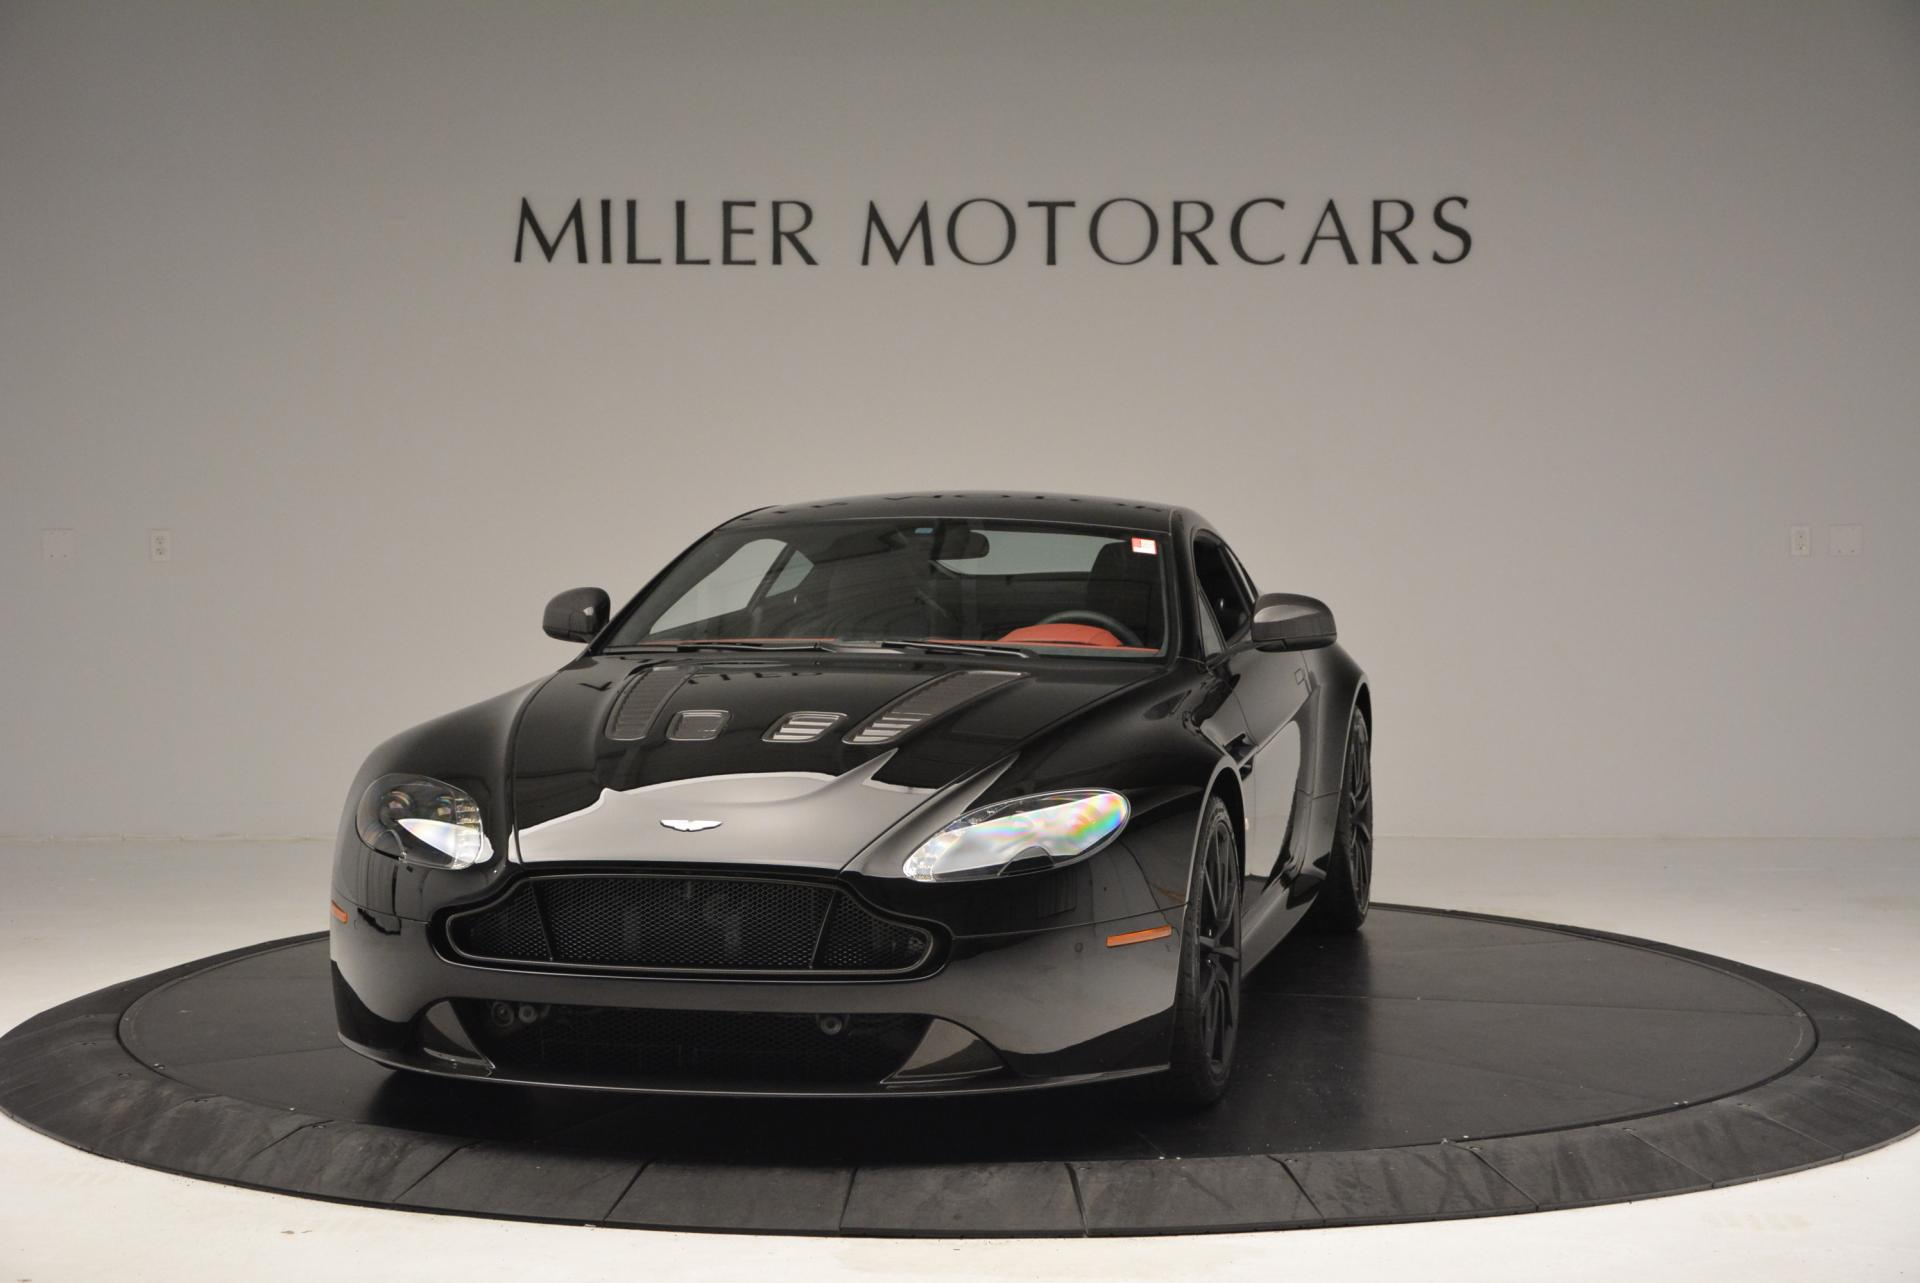 New 2015 Aston Martin V12 Vantage S  For Sale In Westport, CT 103_main